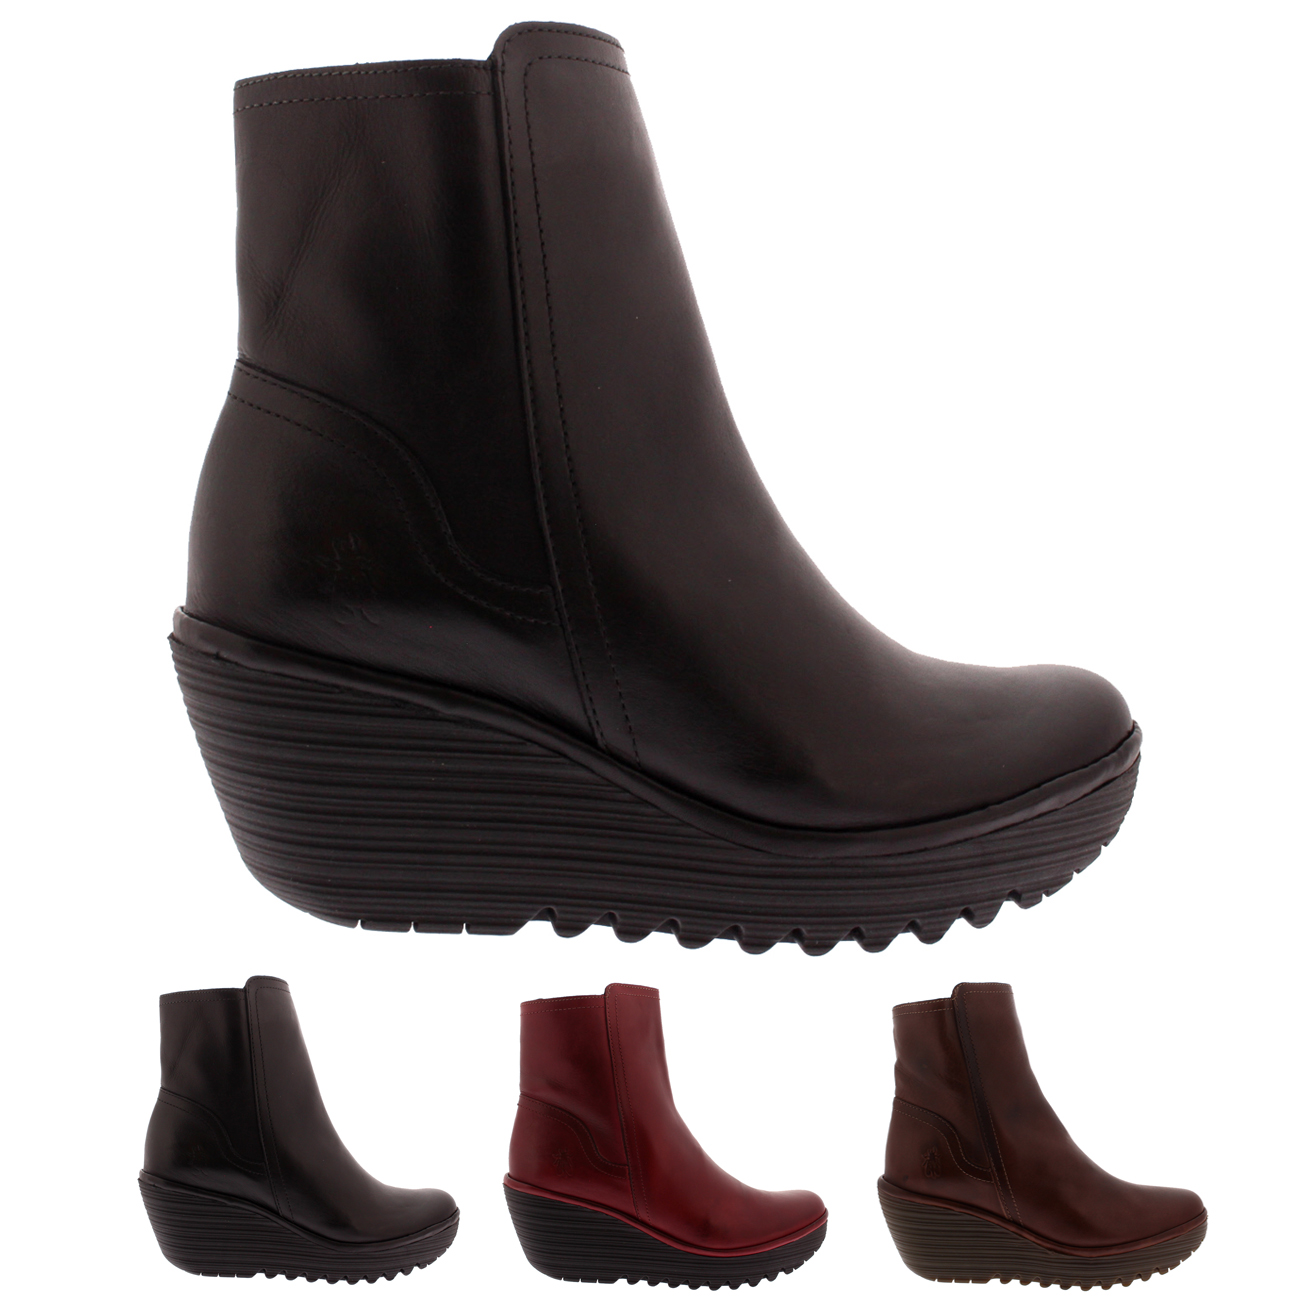 Image is loading Womens-Fly-London-Yeti-Casual-Fashion-Winter-Leather- 689510b77